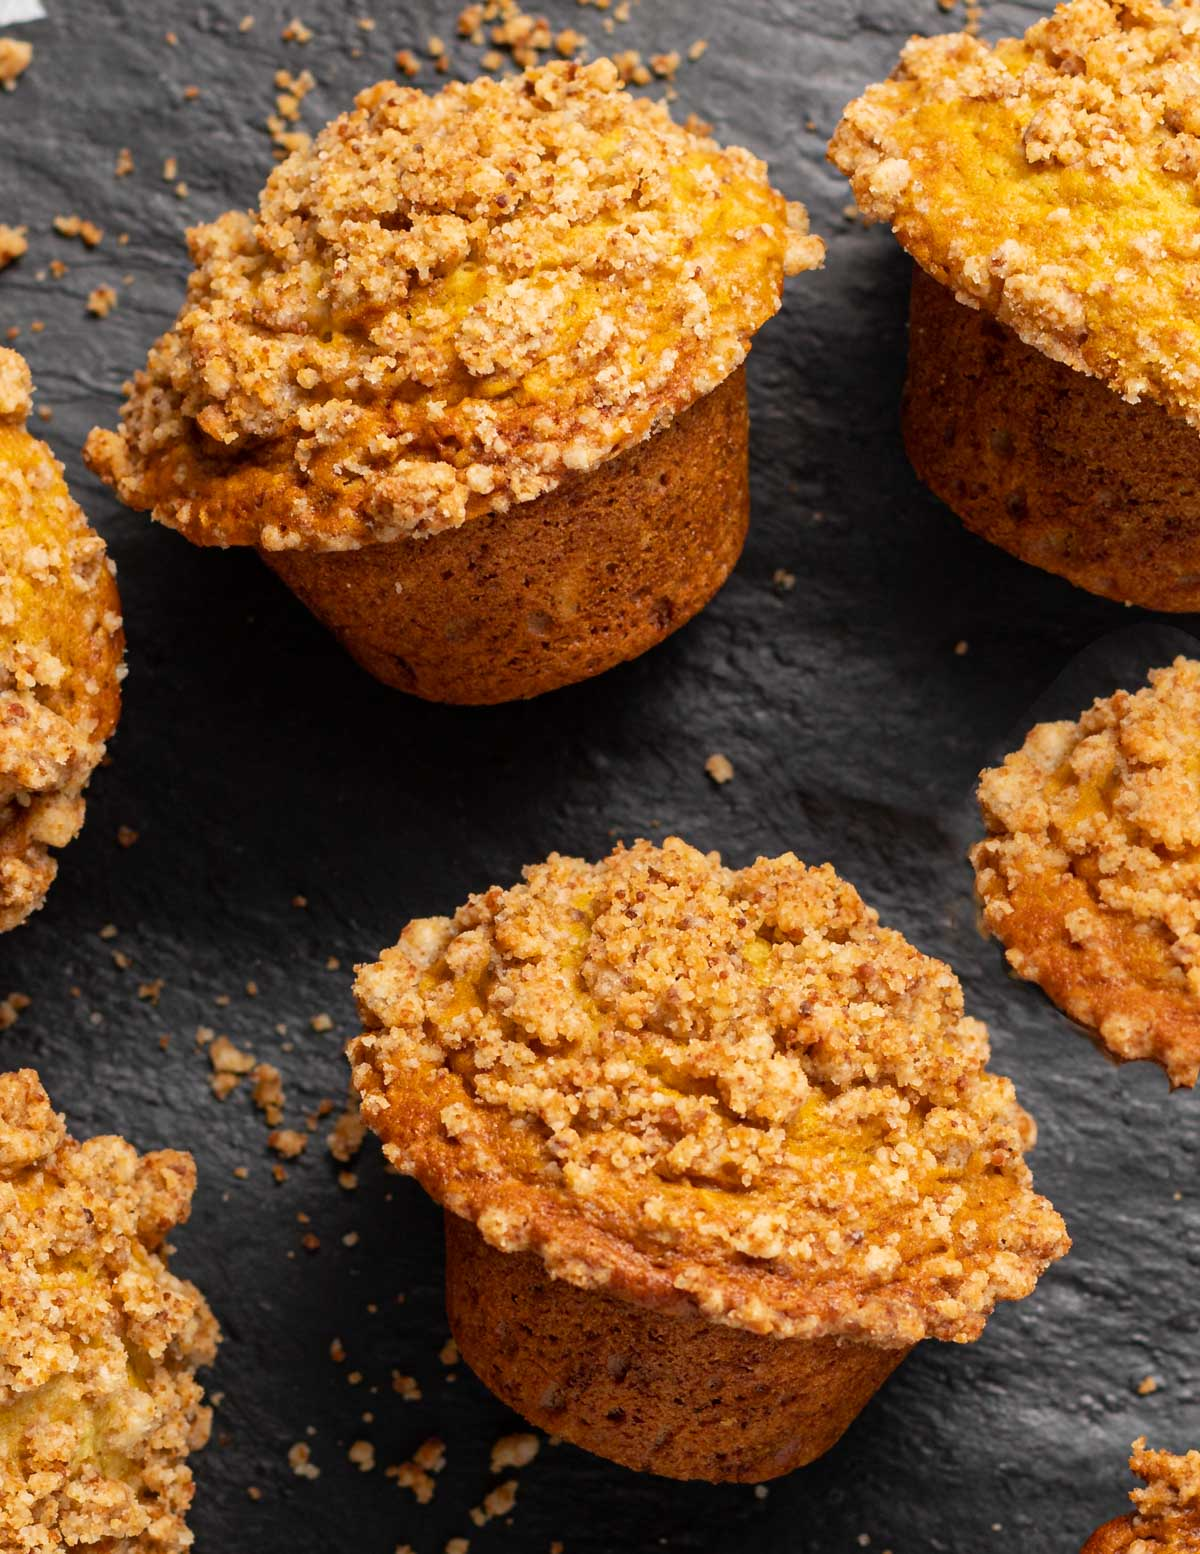 muffins with streusel topping